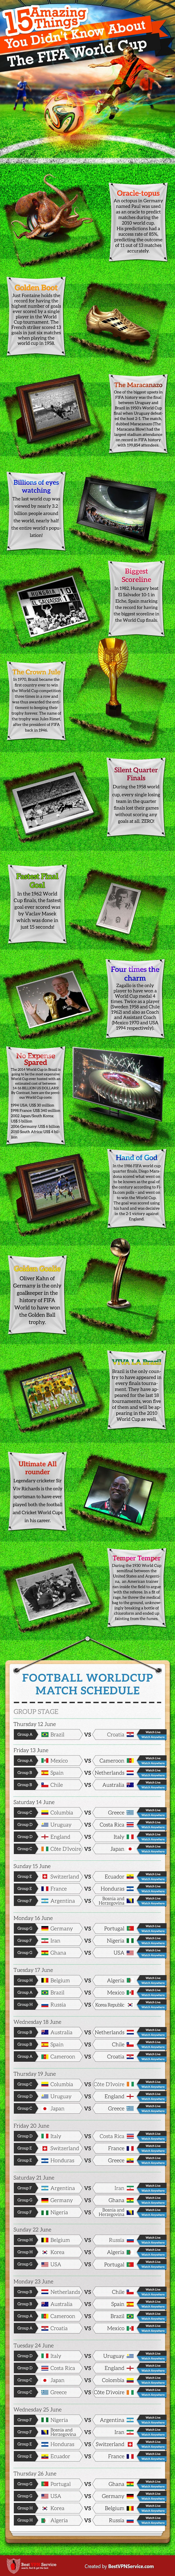 15 Amazing Things You Didn't Know About The FIFA World Cup